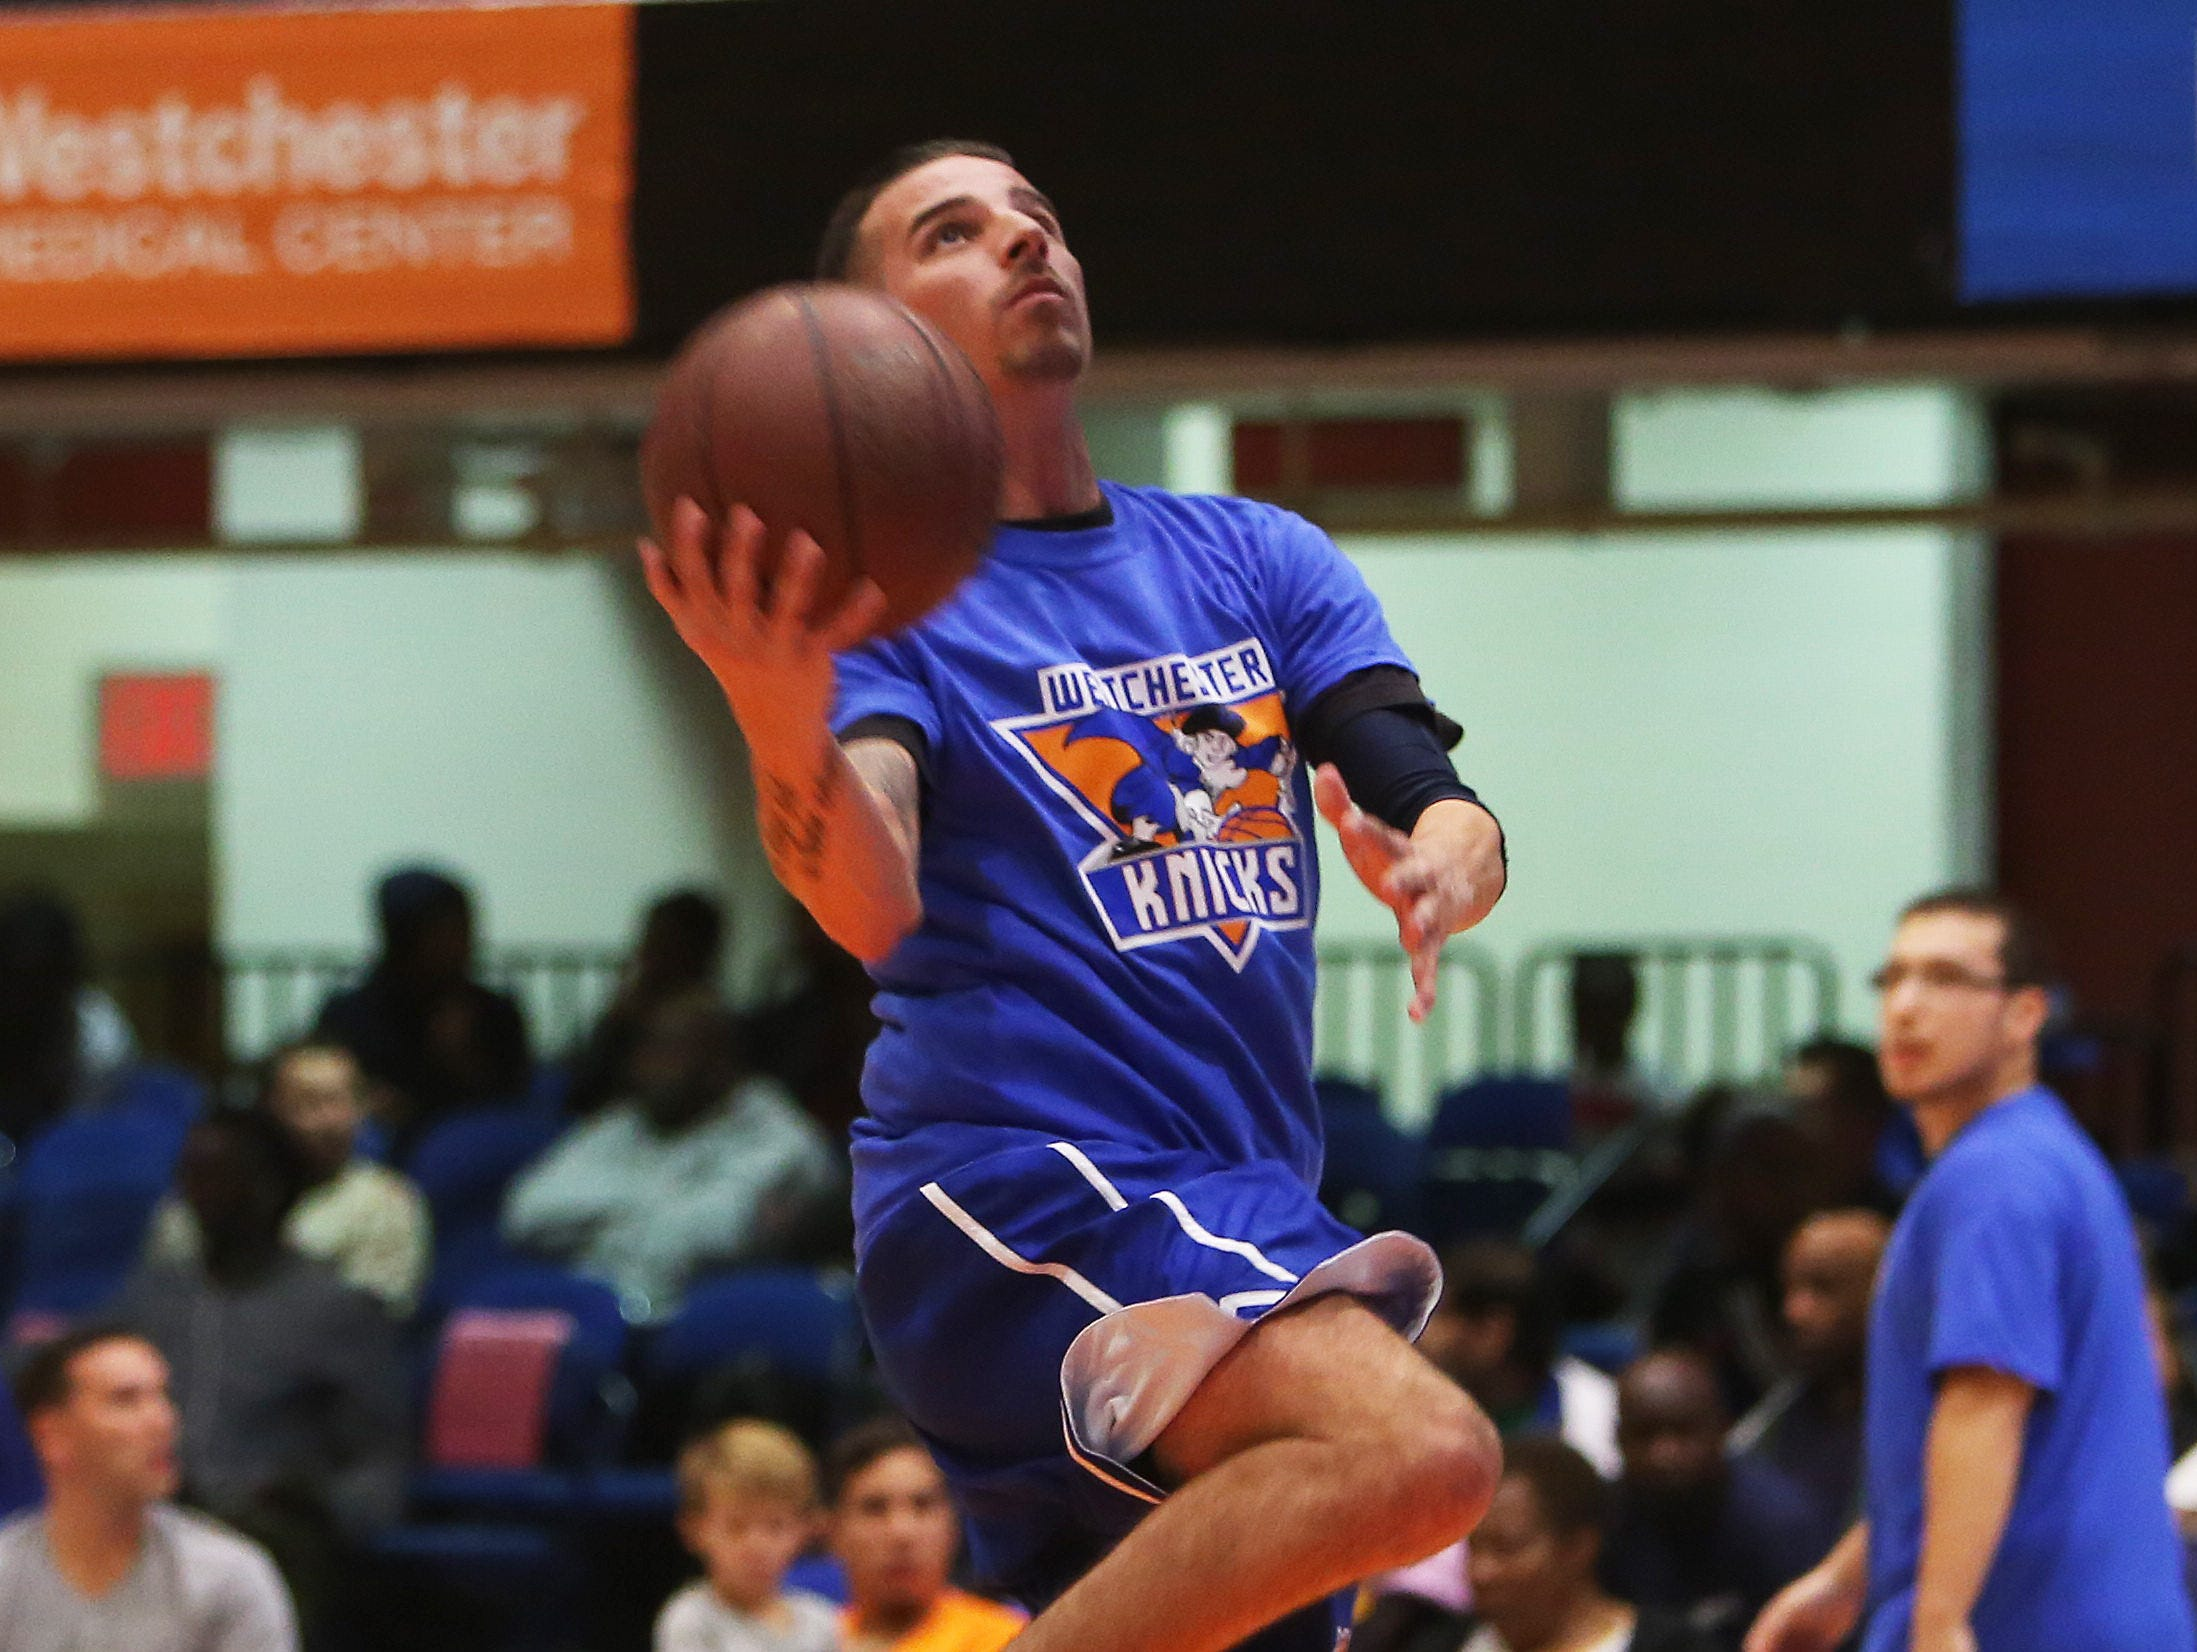 A Local Celebrity Game during the Westchester Knicks Open House for fans at the Westchester County Center in White Plains Oct. 6, 2015.